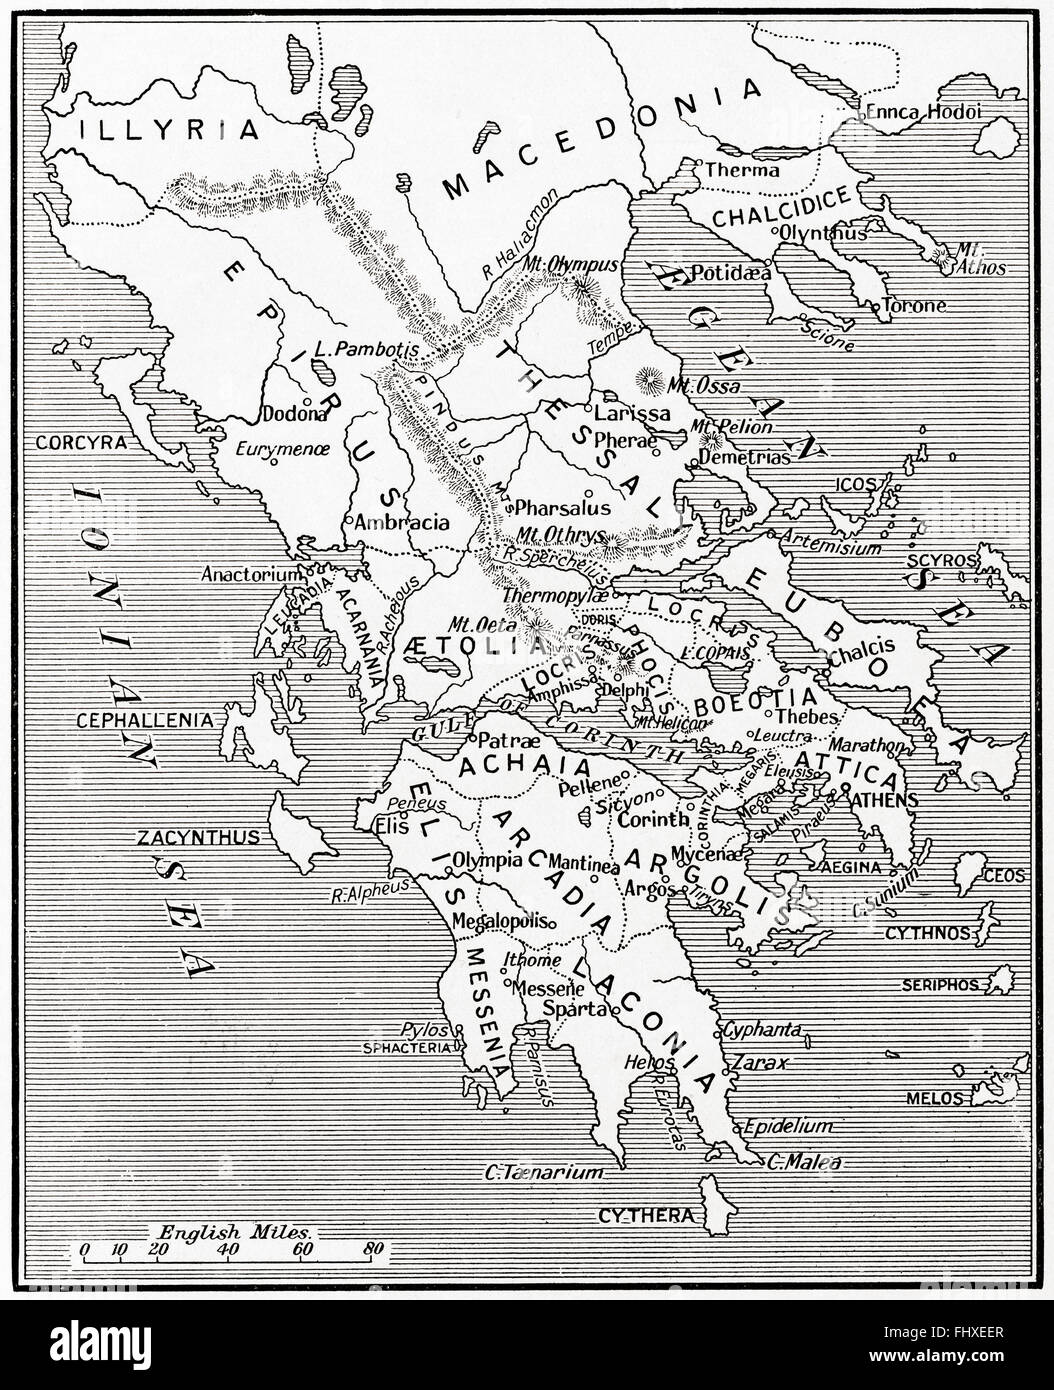 Map of Ancient Greece, 500 - 300 BC. - Stock Image